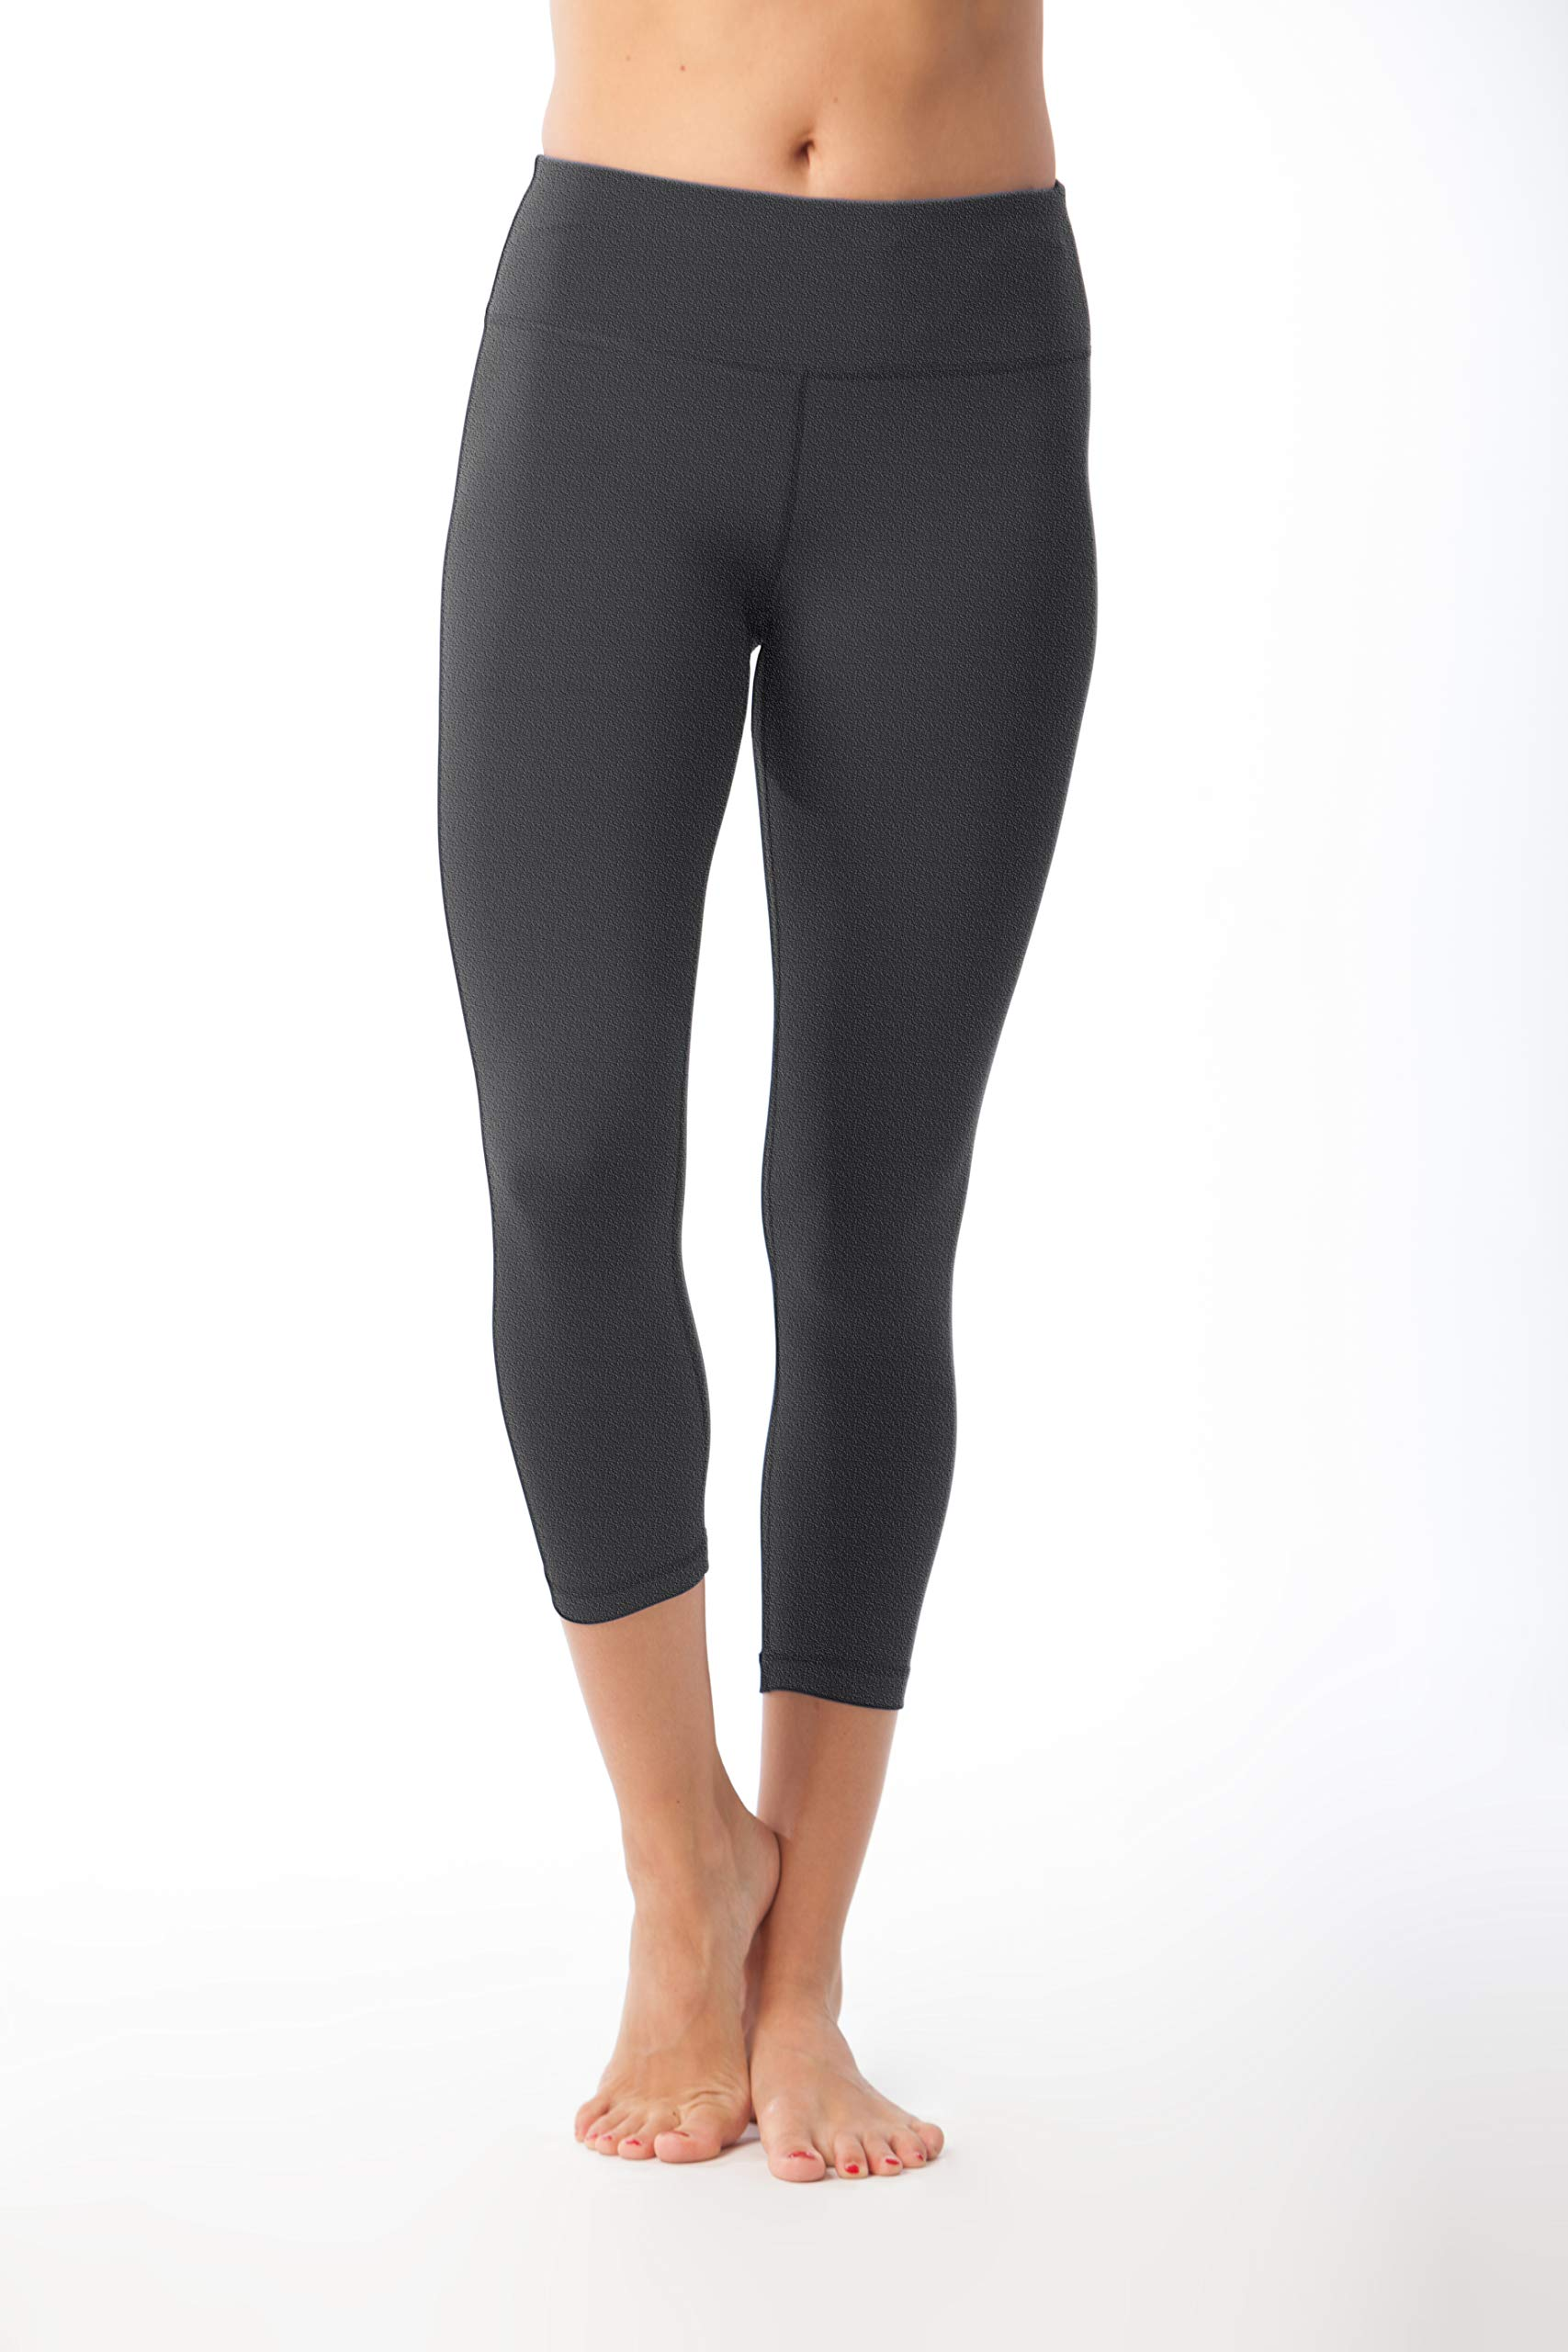 90 Degree By Reflex – Power Flex Yoga Capri – Cationic Heather Activewear Pants - Heather Charcoal XS